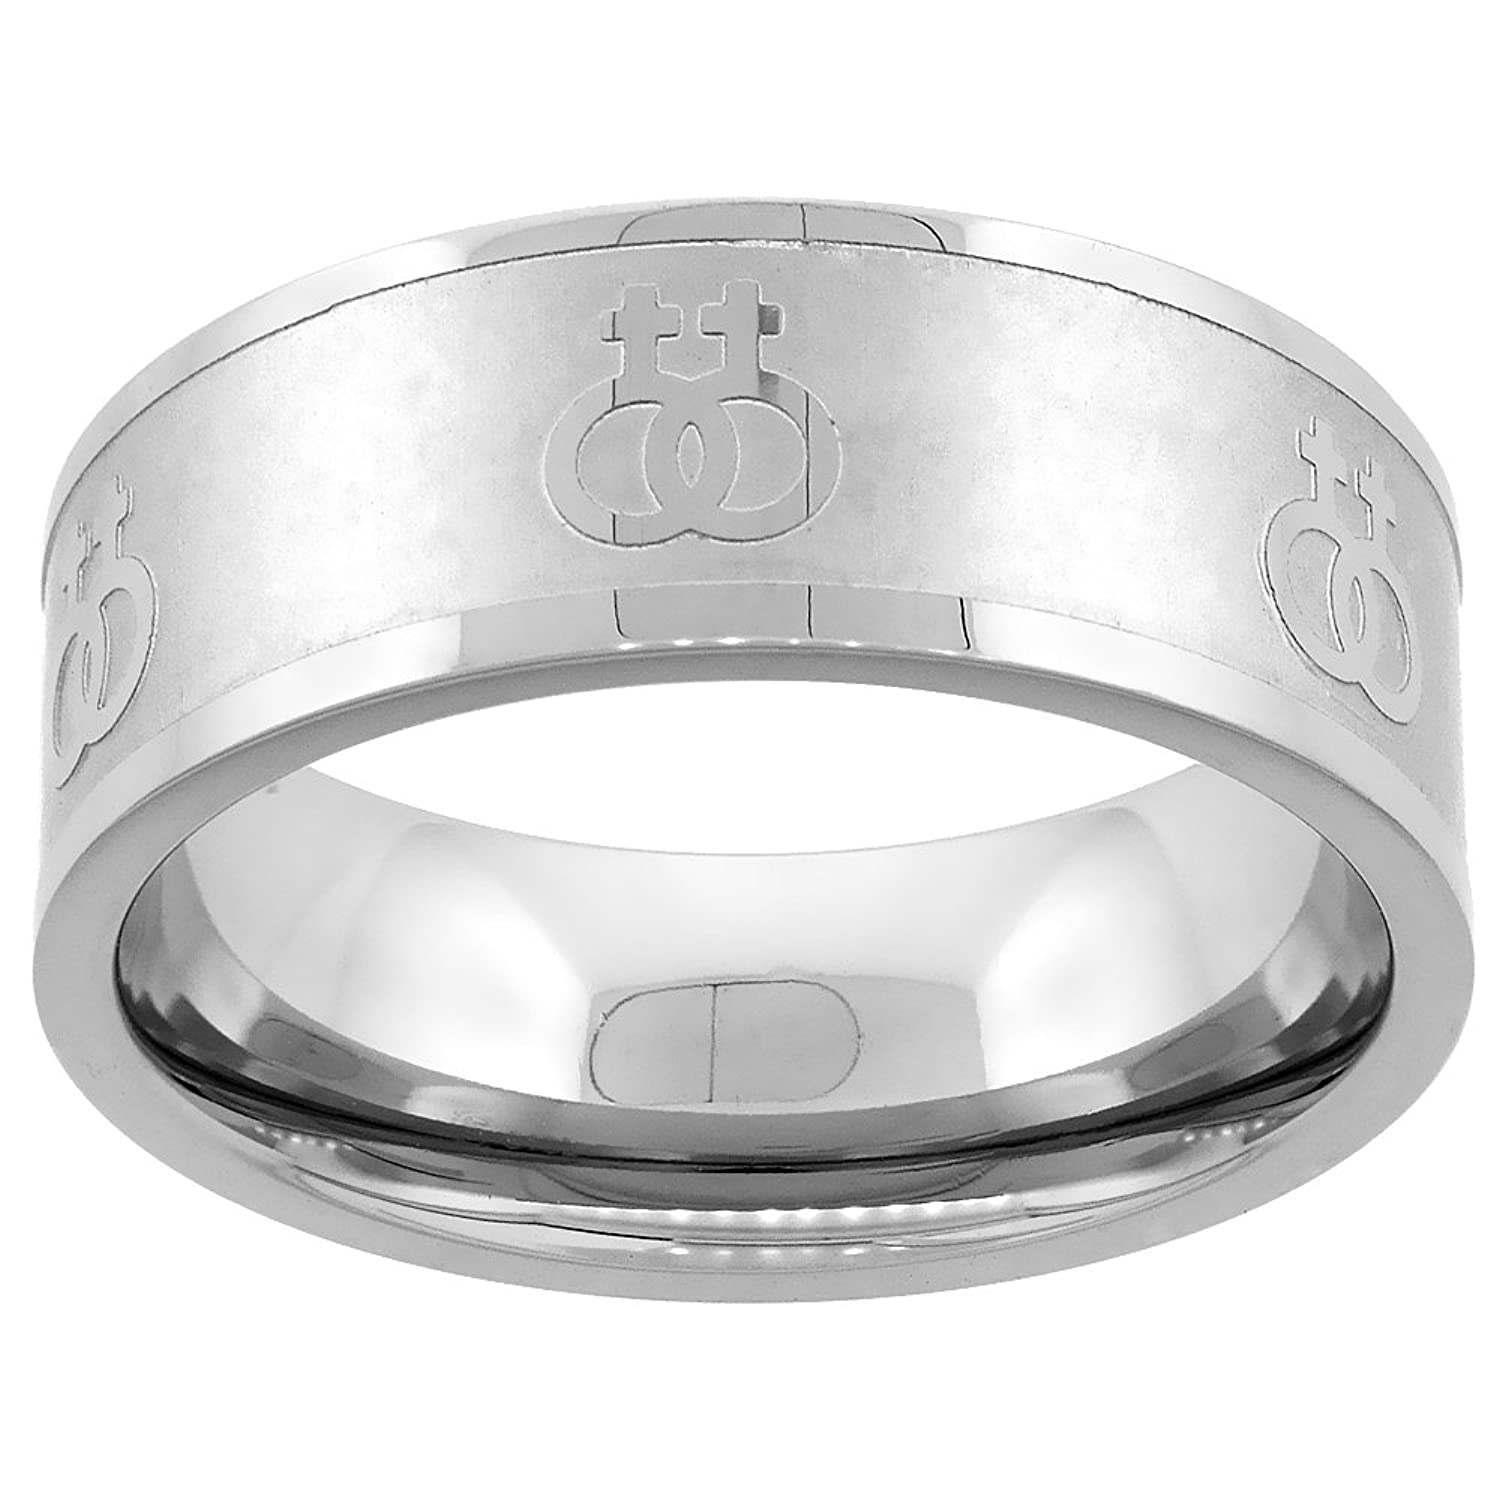 stainless steel lesbian symbols ring 8mm wedding band